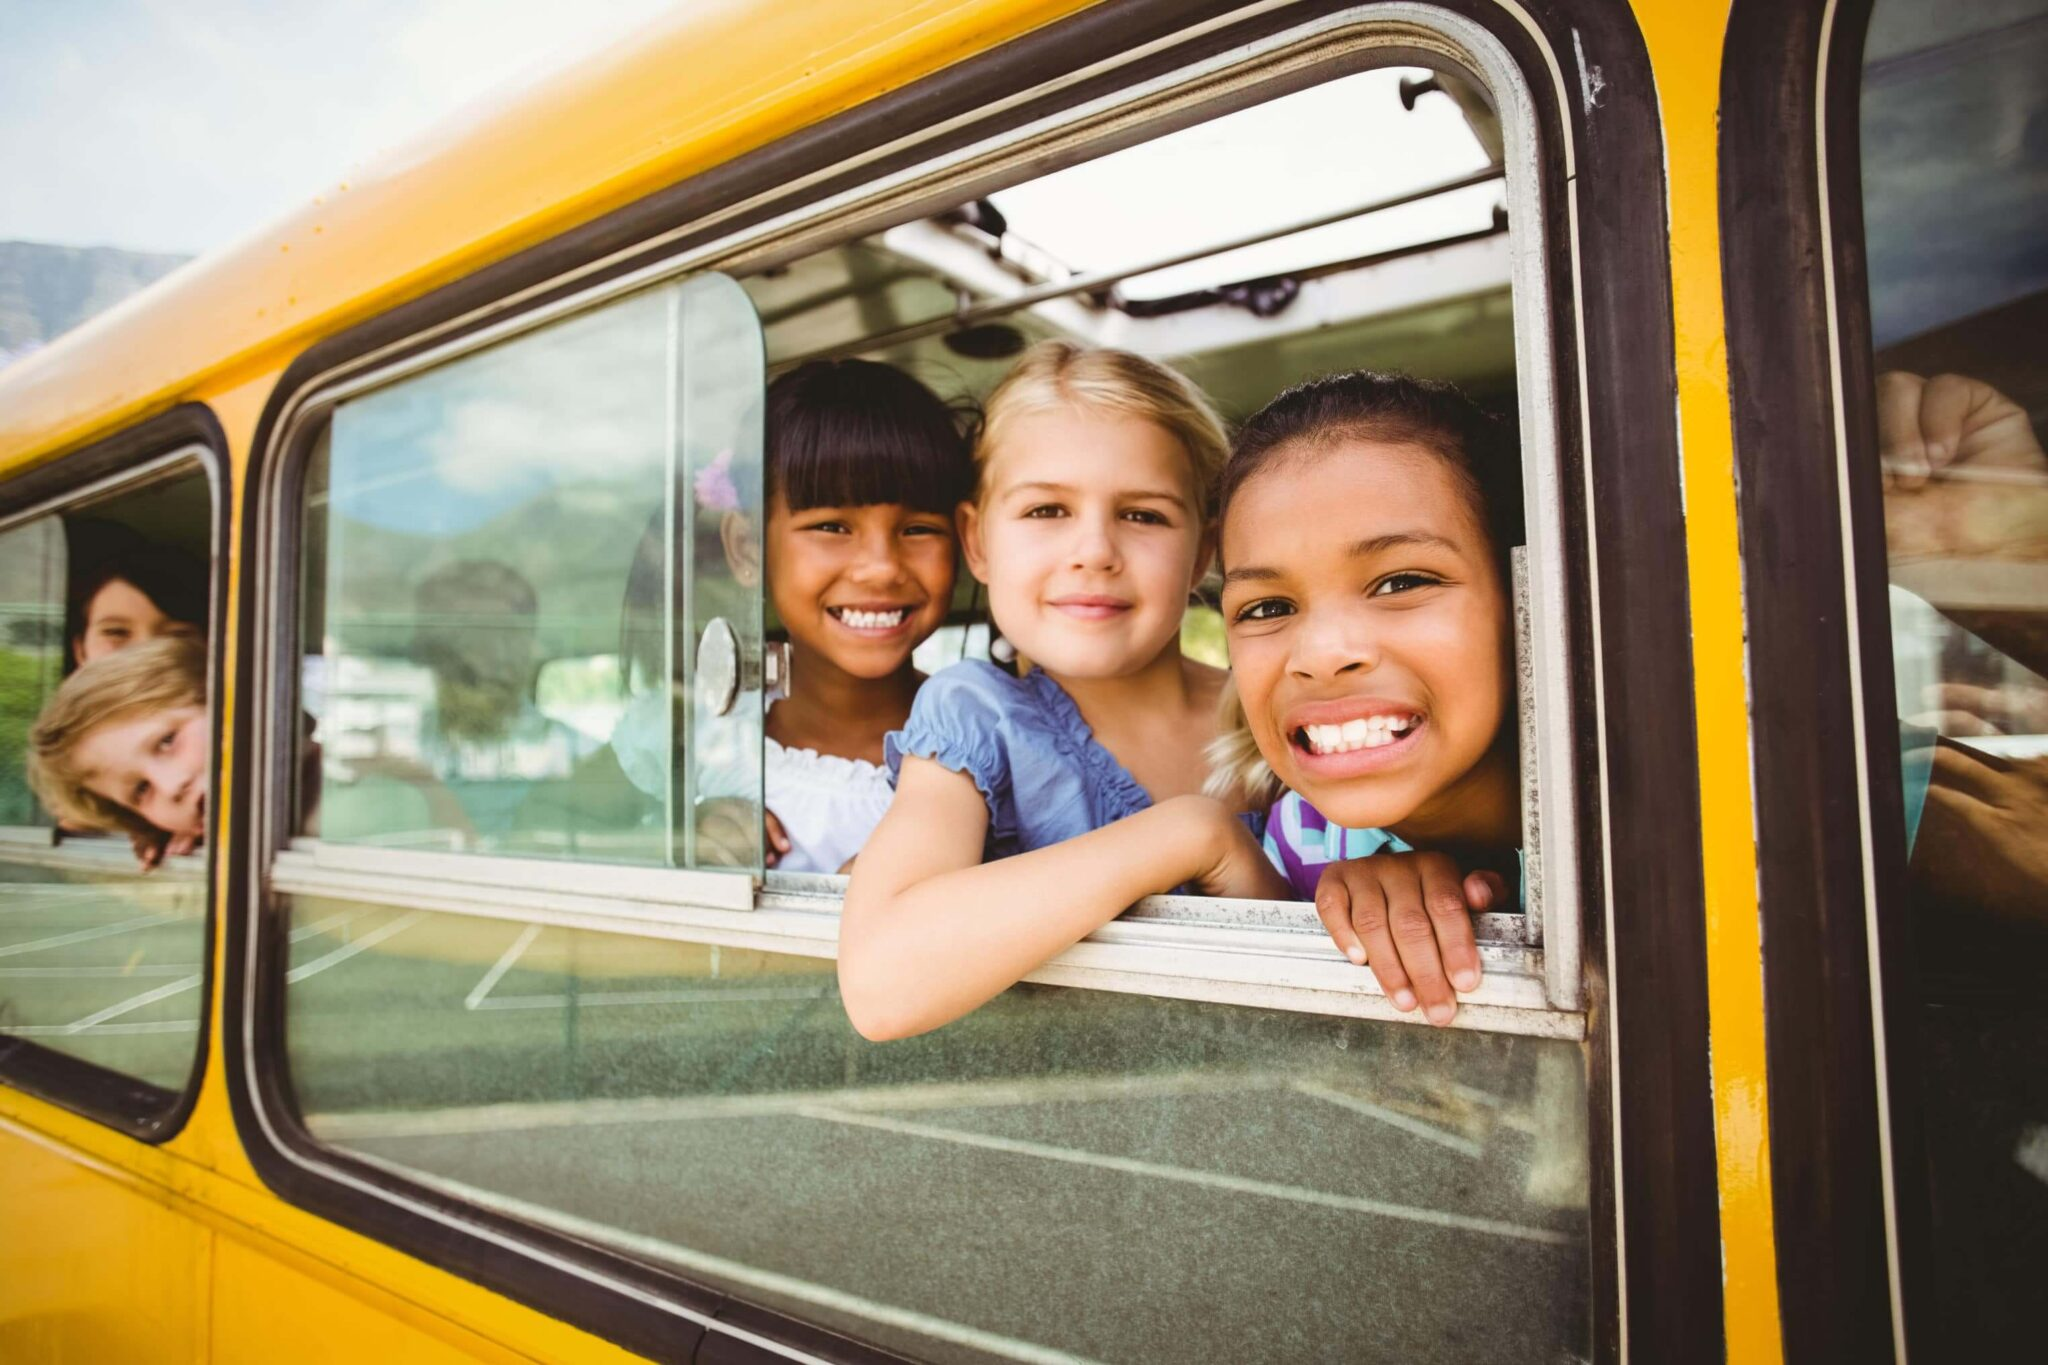 Smiling kids looking out the window on a school bus